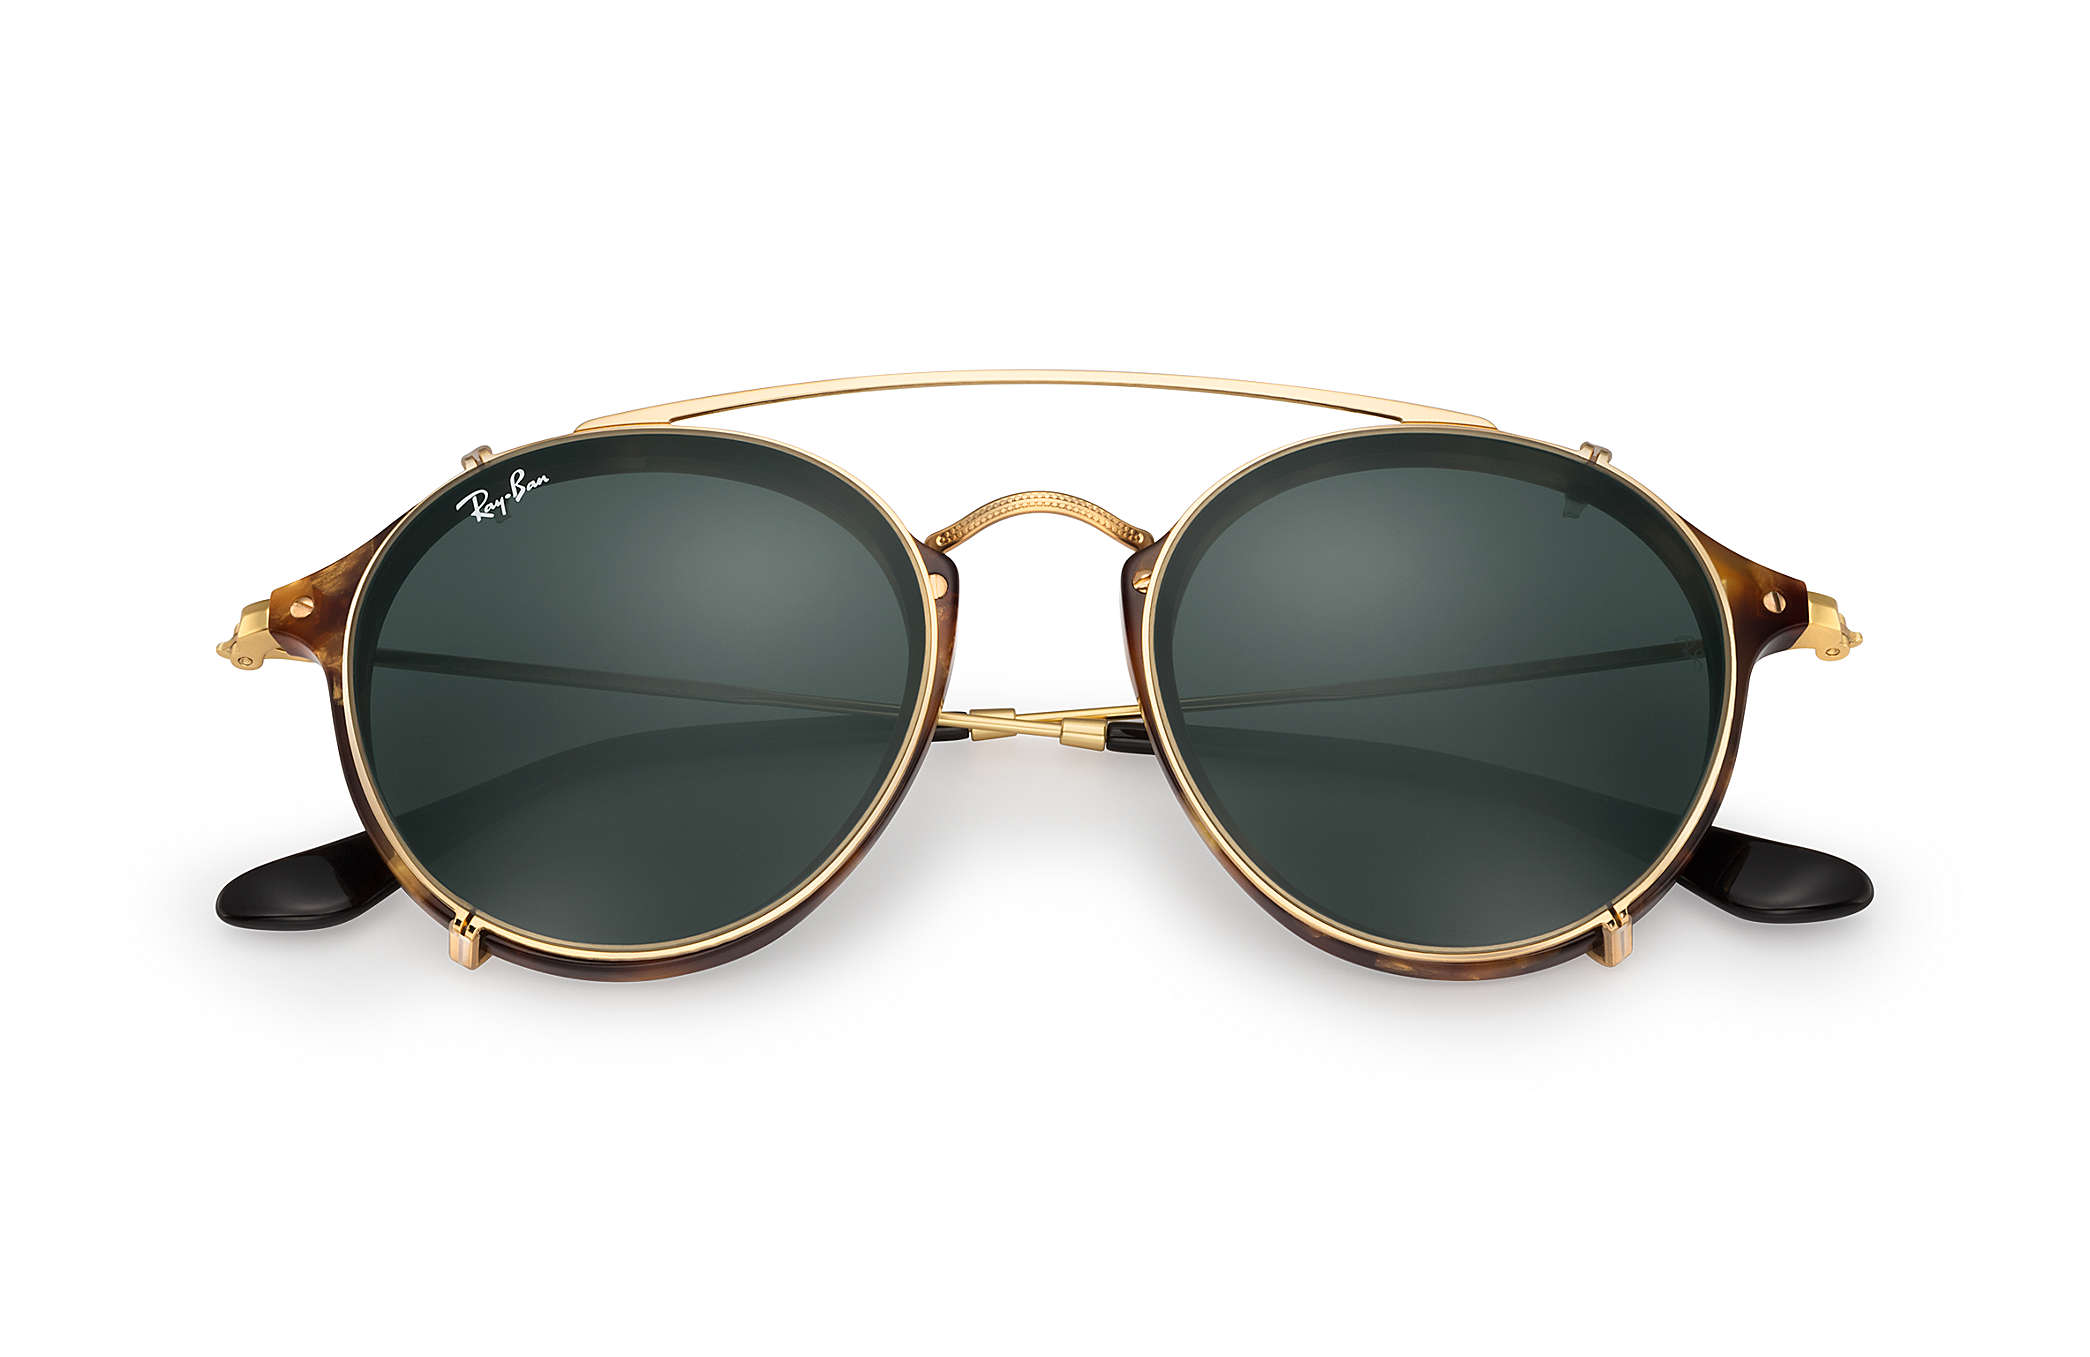 ray ban clip on sunglasses clubmaster shopping center. Black Bedroom Furniture Sets. Home Design Ideas